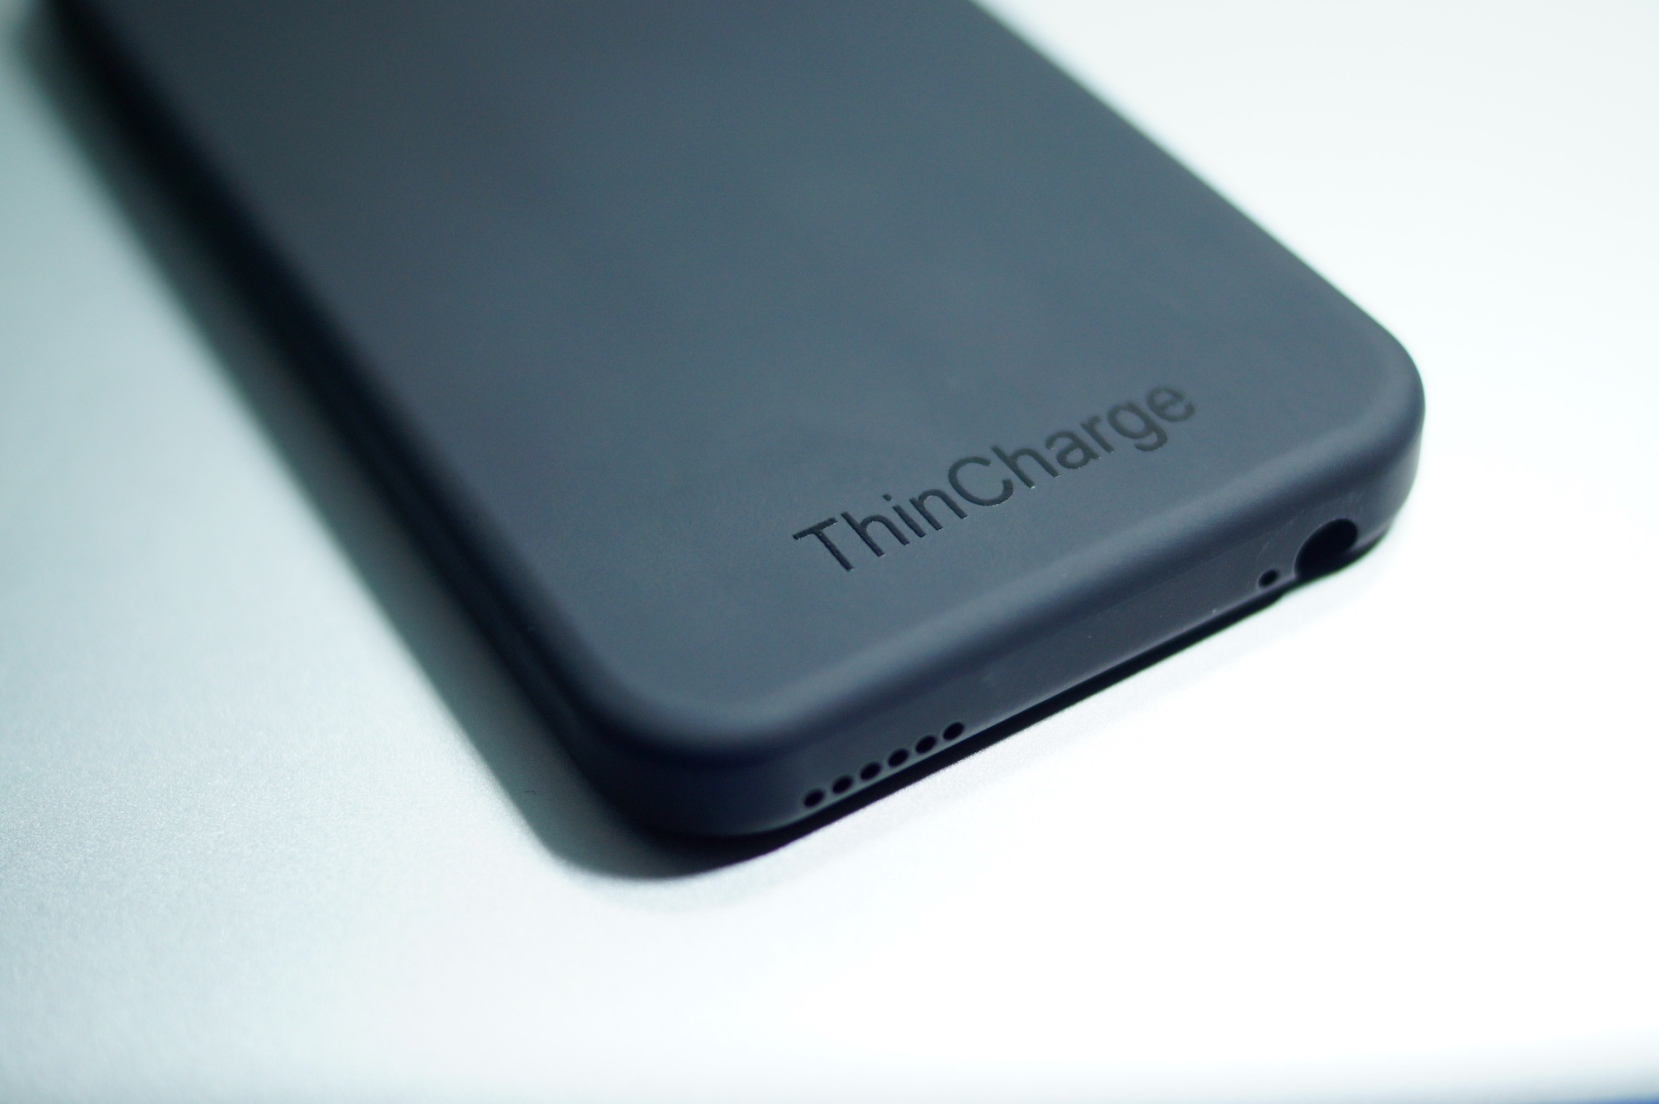 ThinCharge iPhone 6 Batter Case 9